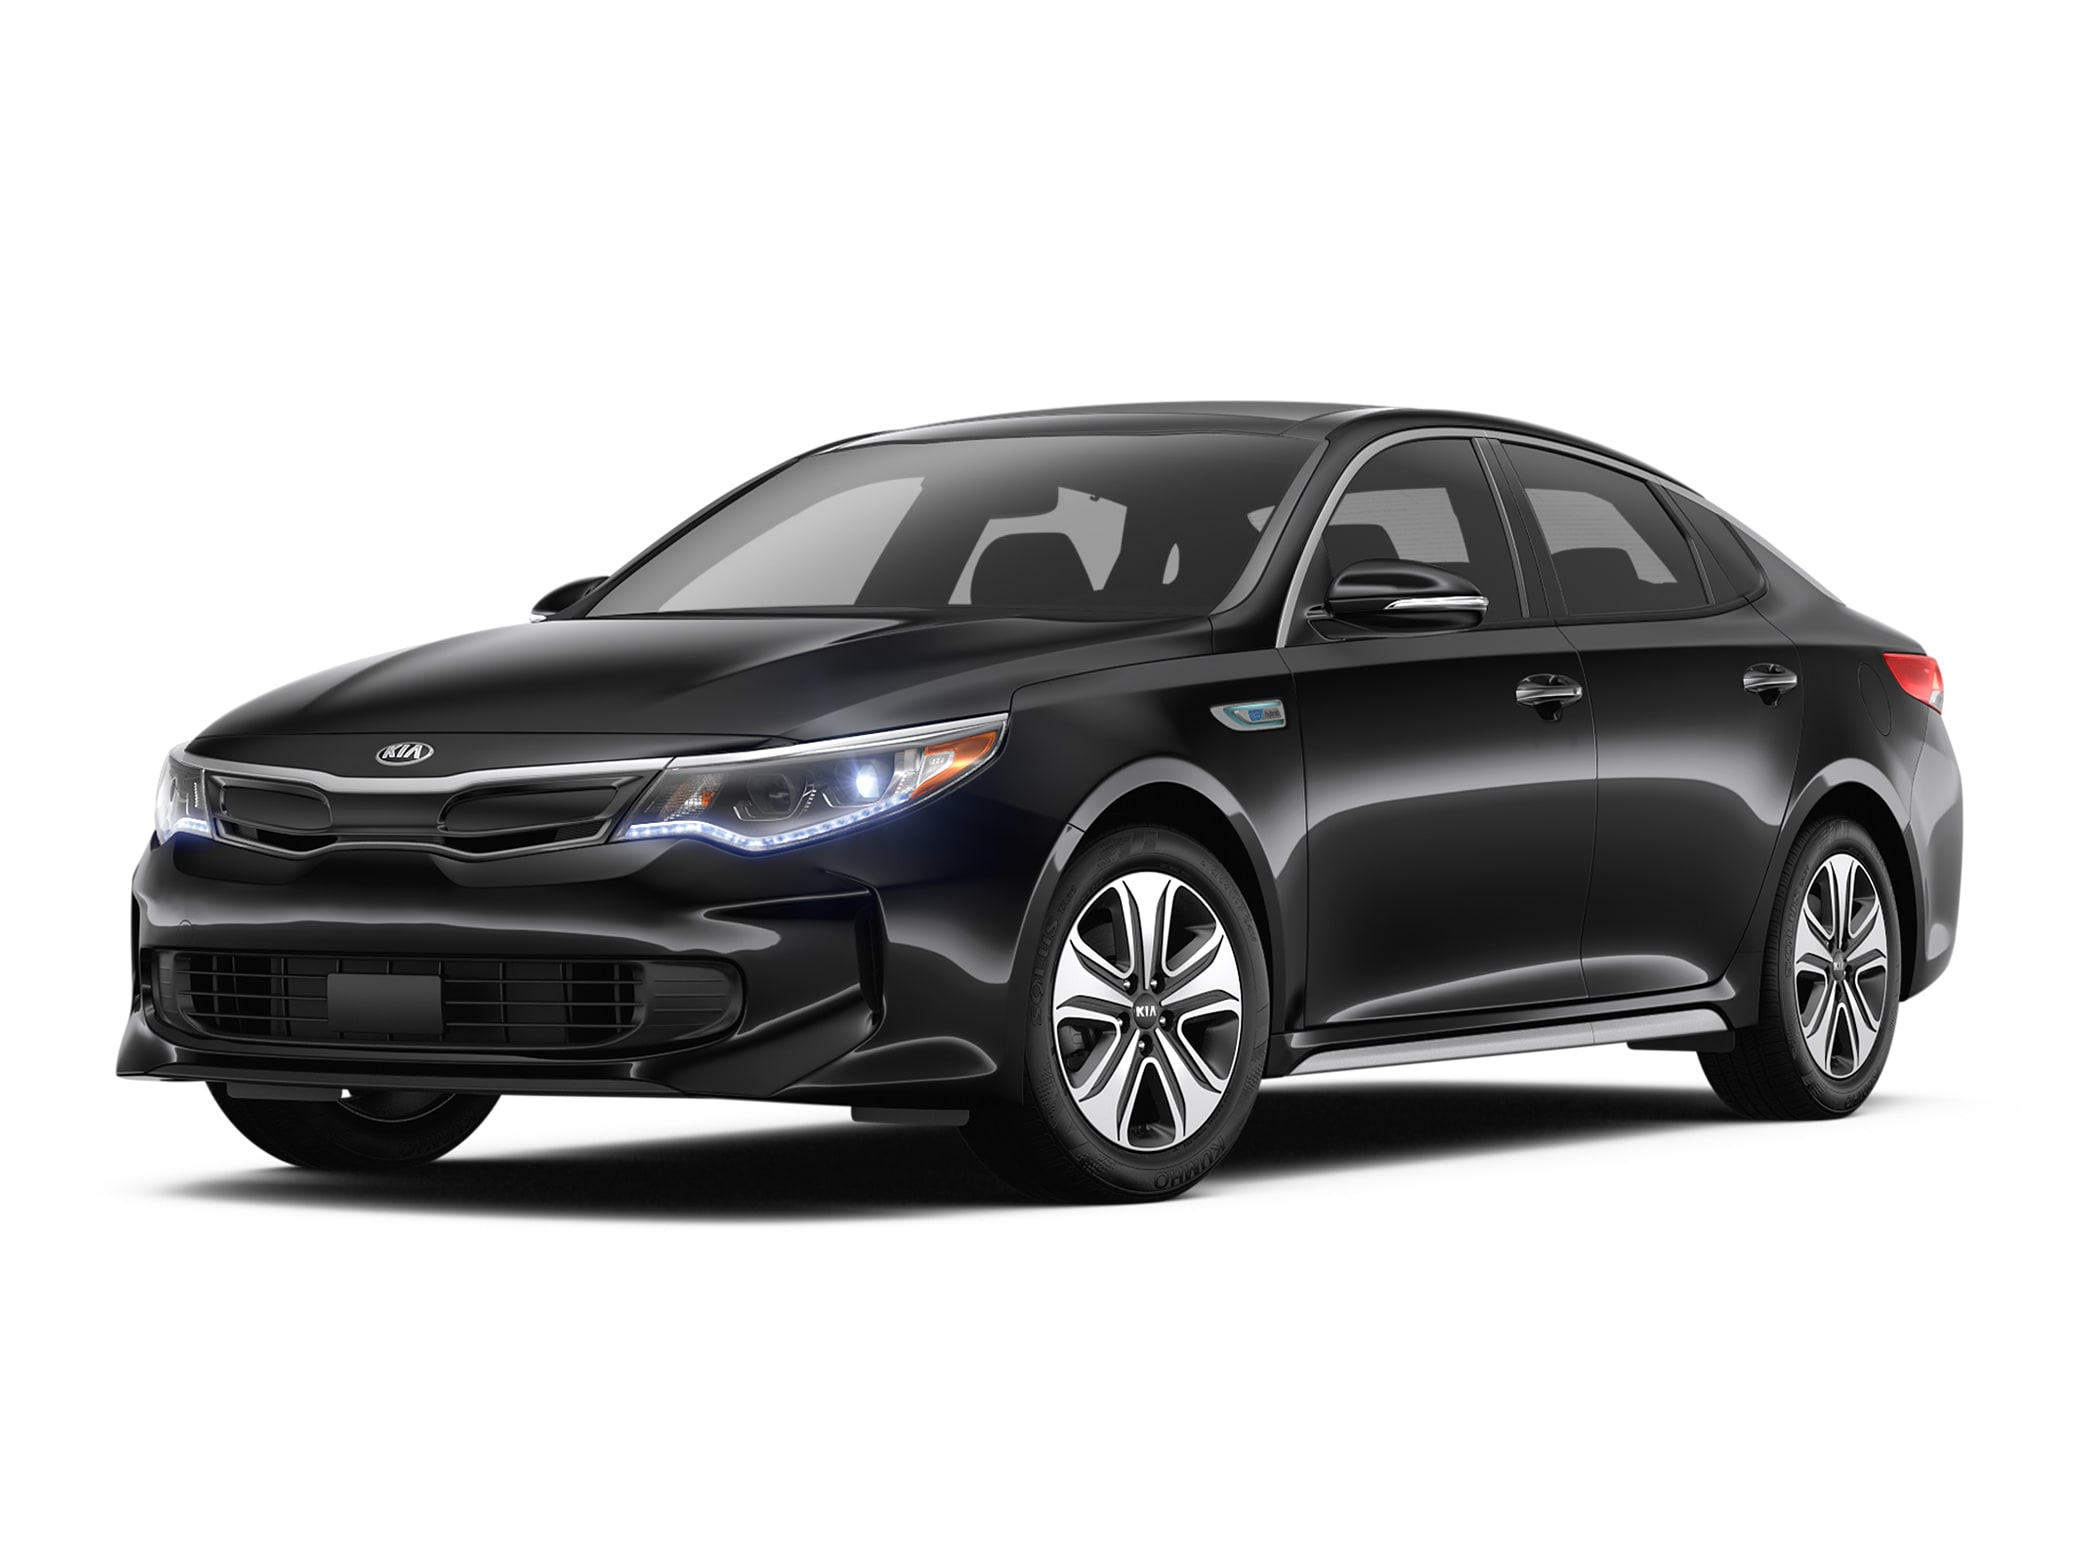 2019 kia optima hybrid sedan digital showroom steve landers kia. Black Bedroom Furniture Sets. Home Design Ideas